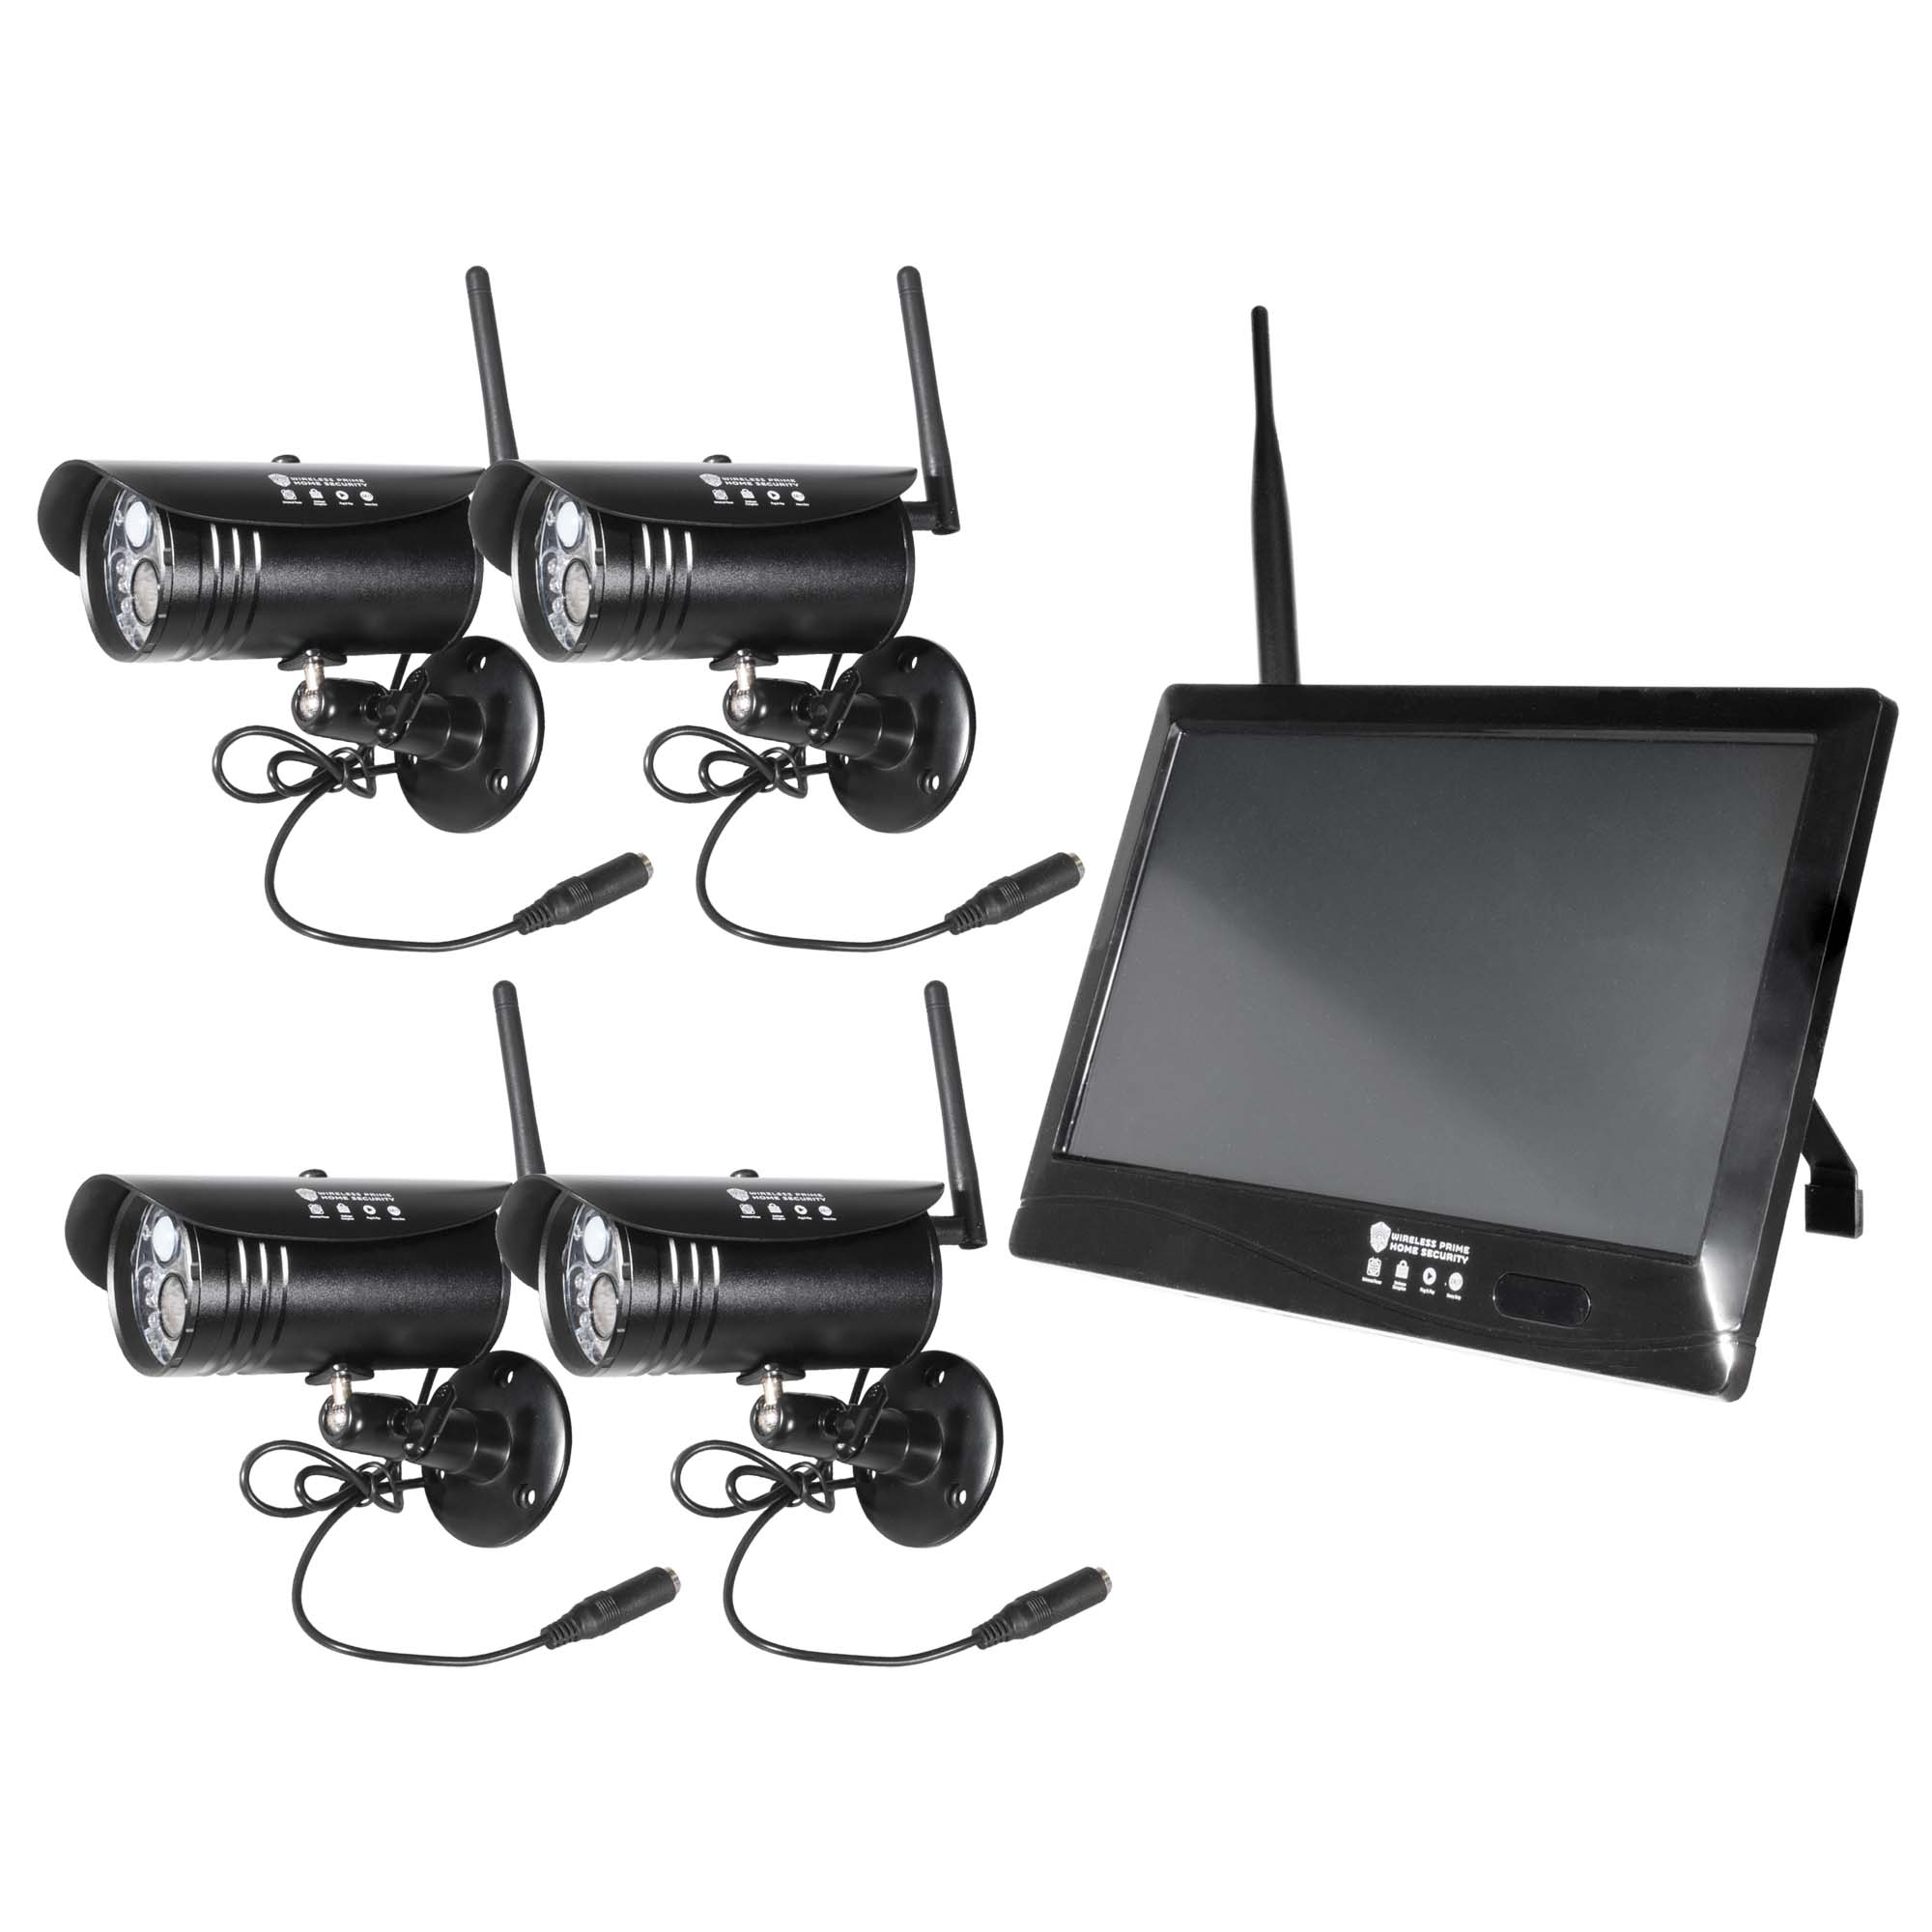 WIRELESS PRIME SECURITY CAMERA SYSTEM